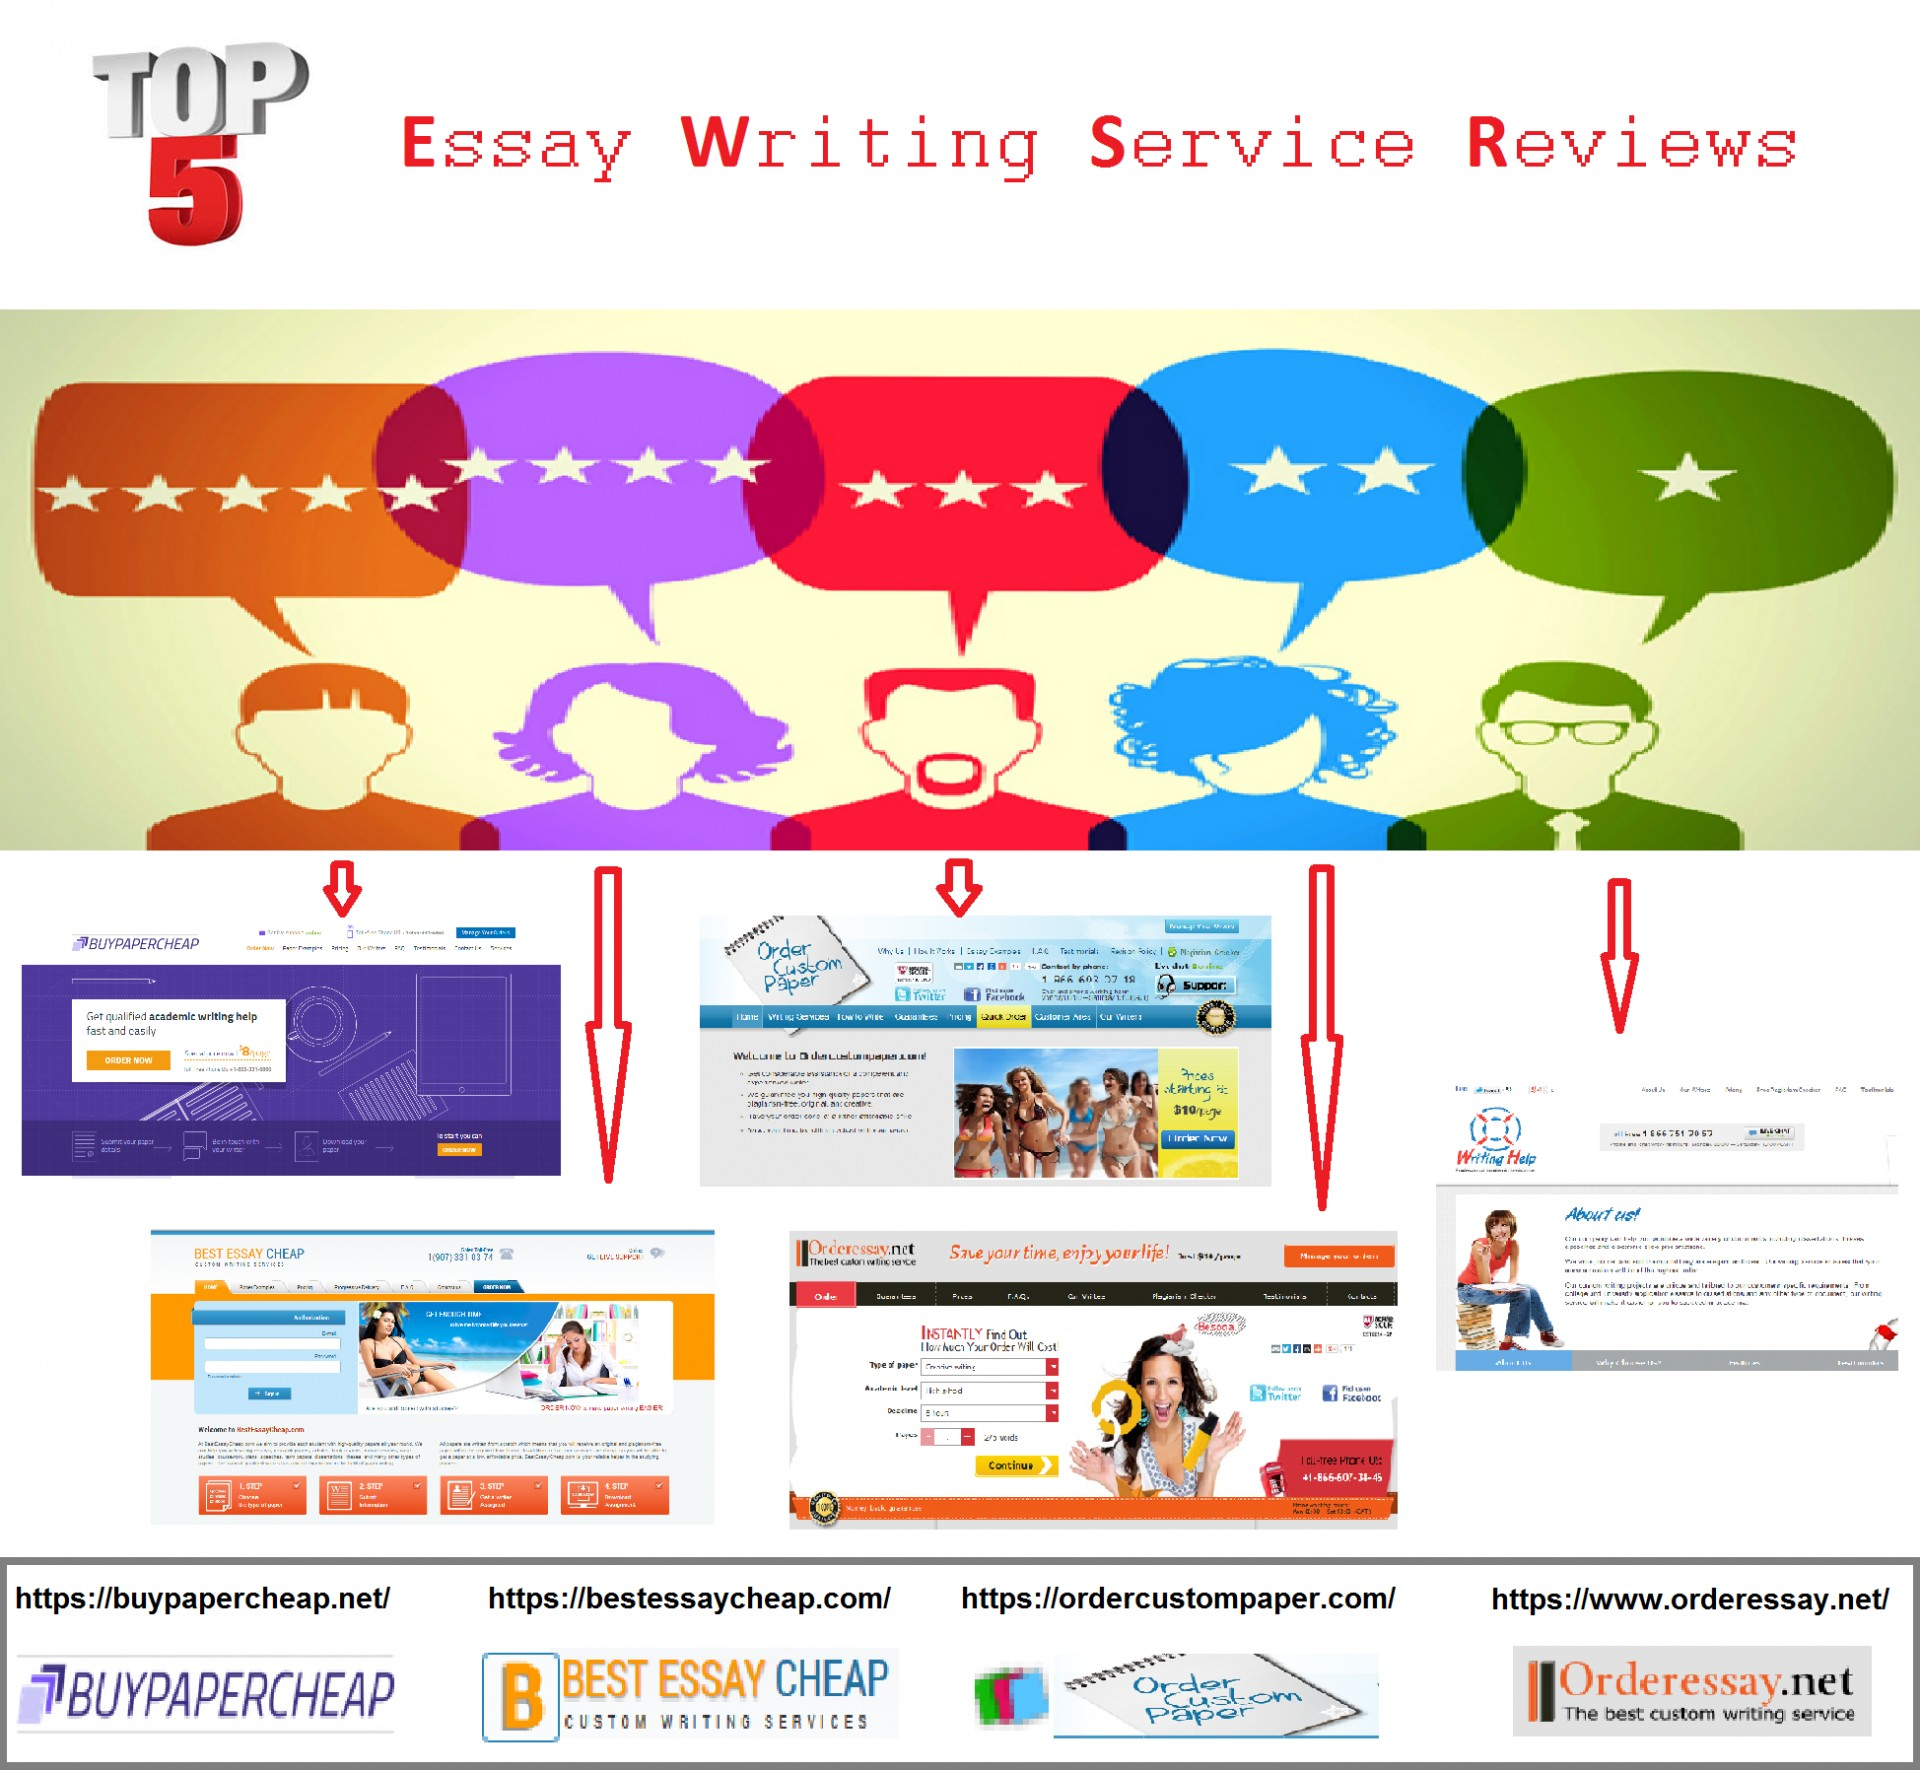 001 Essay Writing Service Reviews Custom Services From Best Essays Paper Sites Company Ideas Of Sale Discount Br Singular 2017 Top 1920